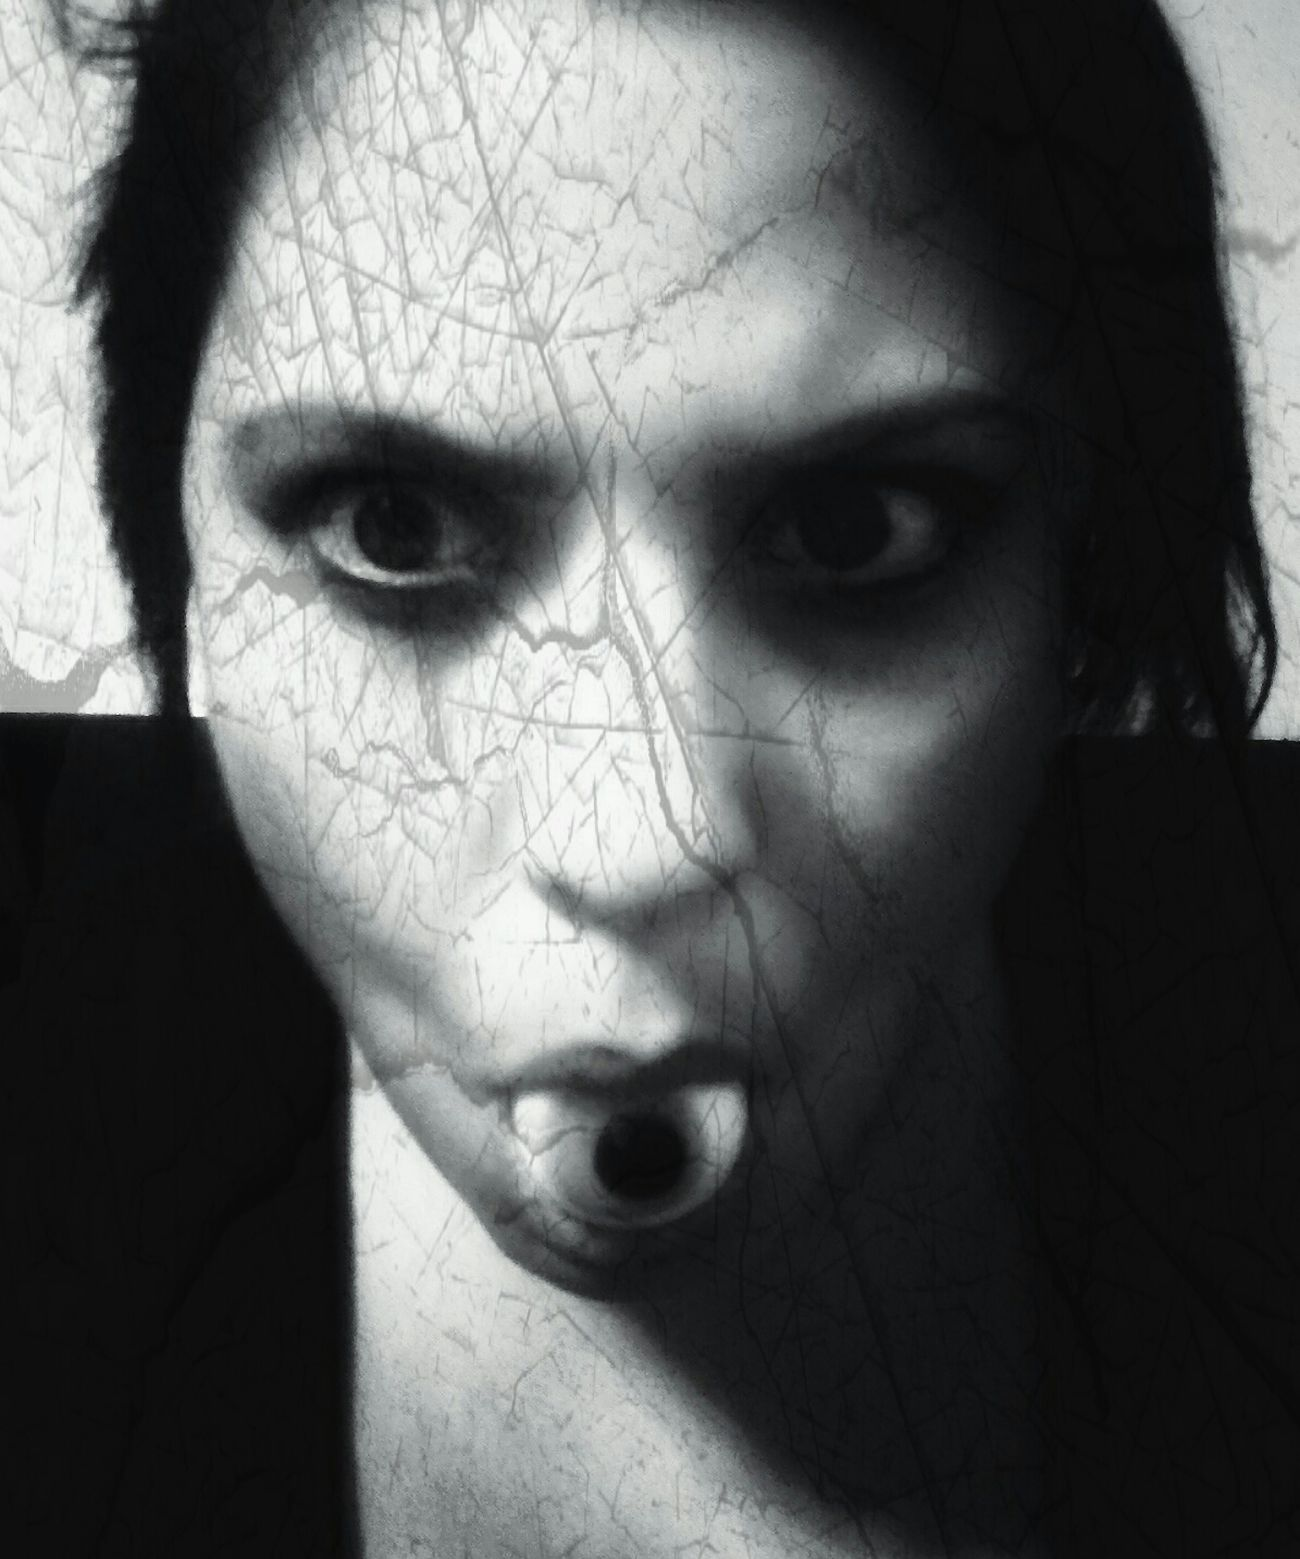 eyes Blackandwhite Spooky Human Face Horror Self Portrait Dark Edit Goodnight STAY HUMAN 💯 OpenEdit Monochrome Open Edit Dark Art NEM Self Selfportrait Black & White Vampires And Werewolves MeMyself&I Dark Portrait That's Me Blackandwhite Photography Darkness Darkart Goth Look Into The Darkness